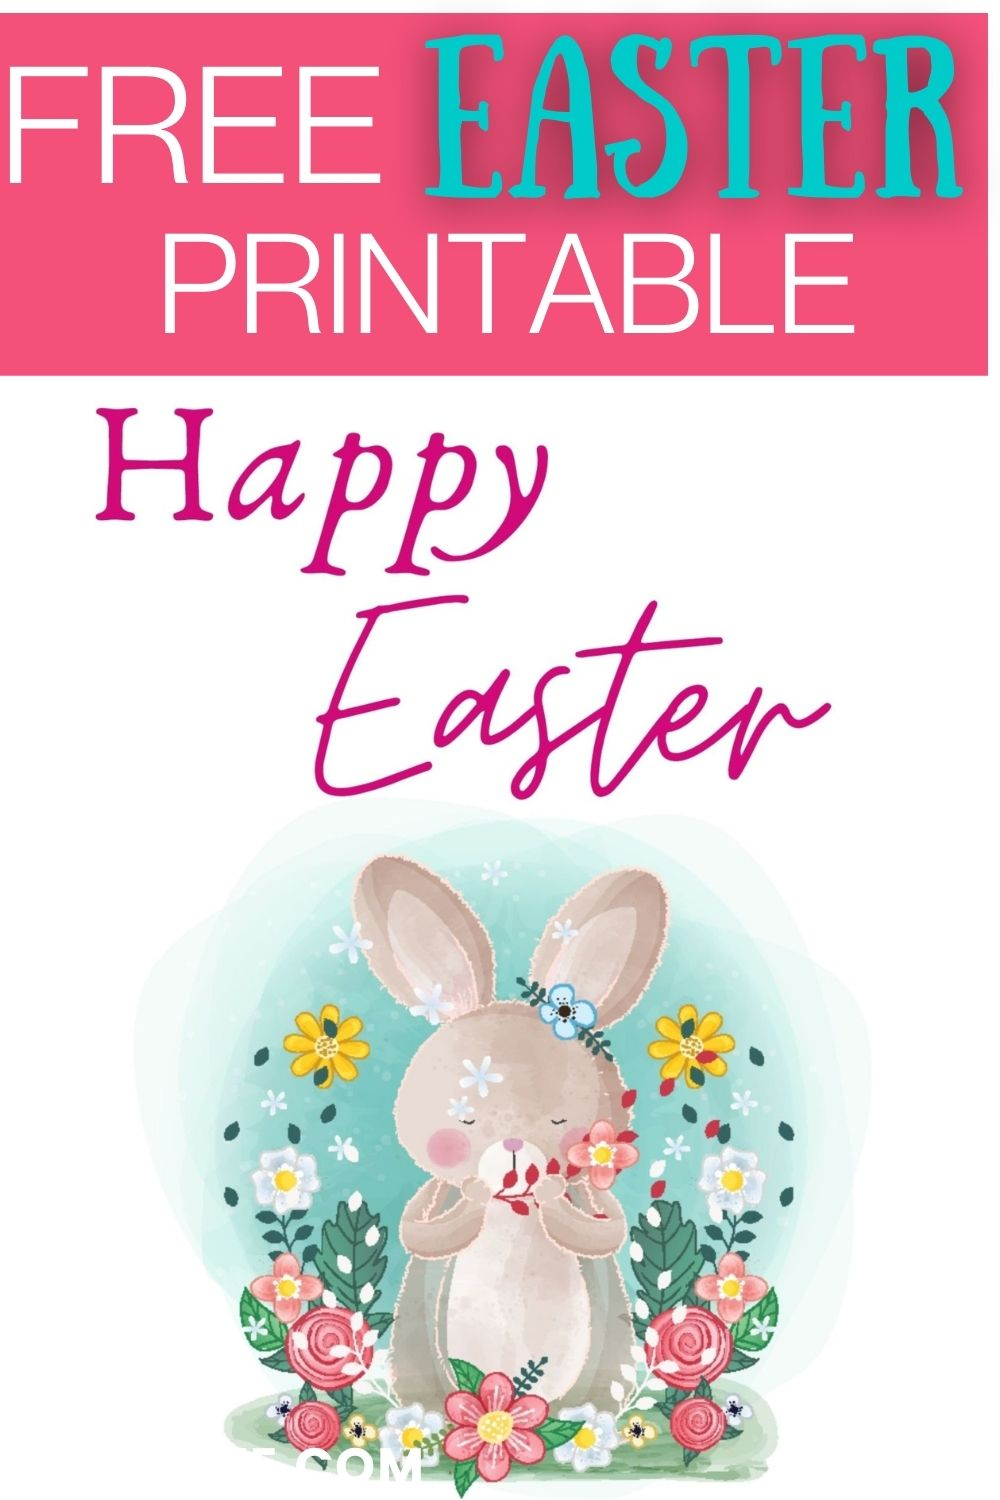 Use this free Easter printable to decorate your home, classroom, or office for the season.  Print it out and either hang it as is or pop it into a frame to use anywhere that you want to add a touch of Easter decor. via @spaula